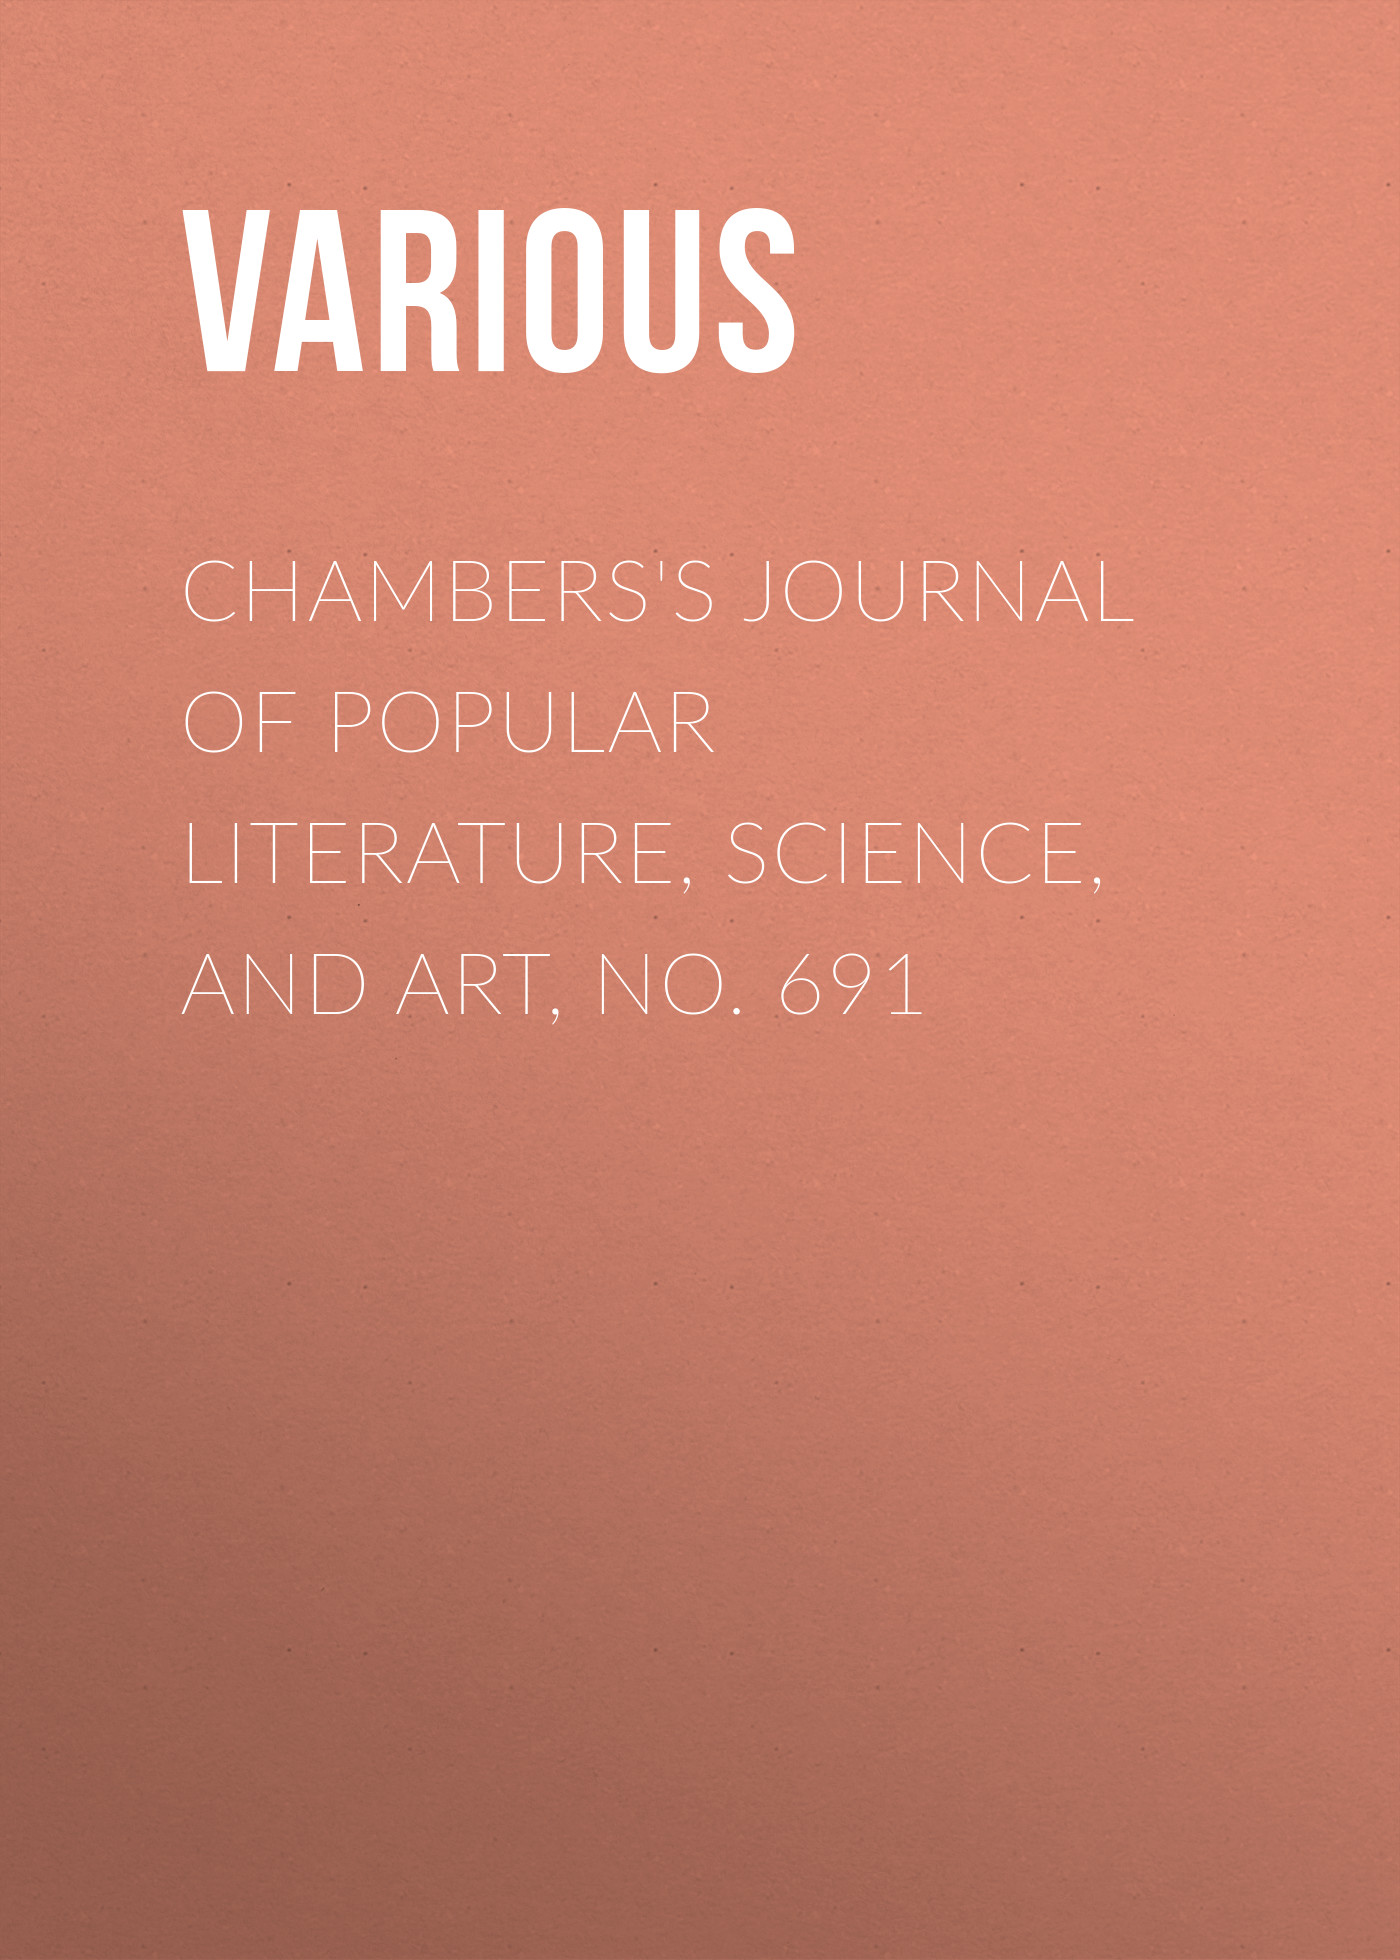 Various Chambers's Journal of Popular Literature, Science, and Art, No. 691 various chambers s journal of popular literature science and art no 699